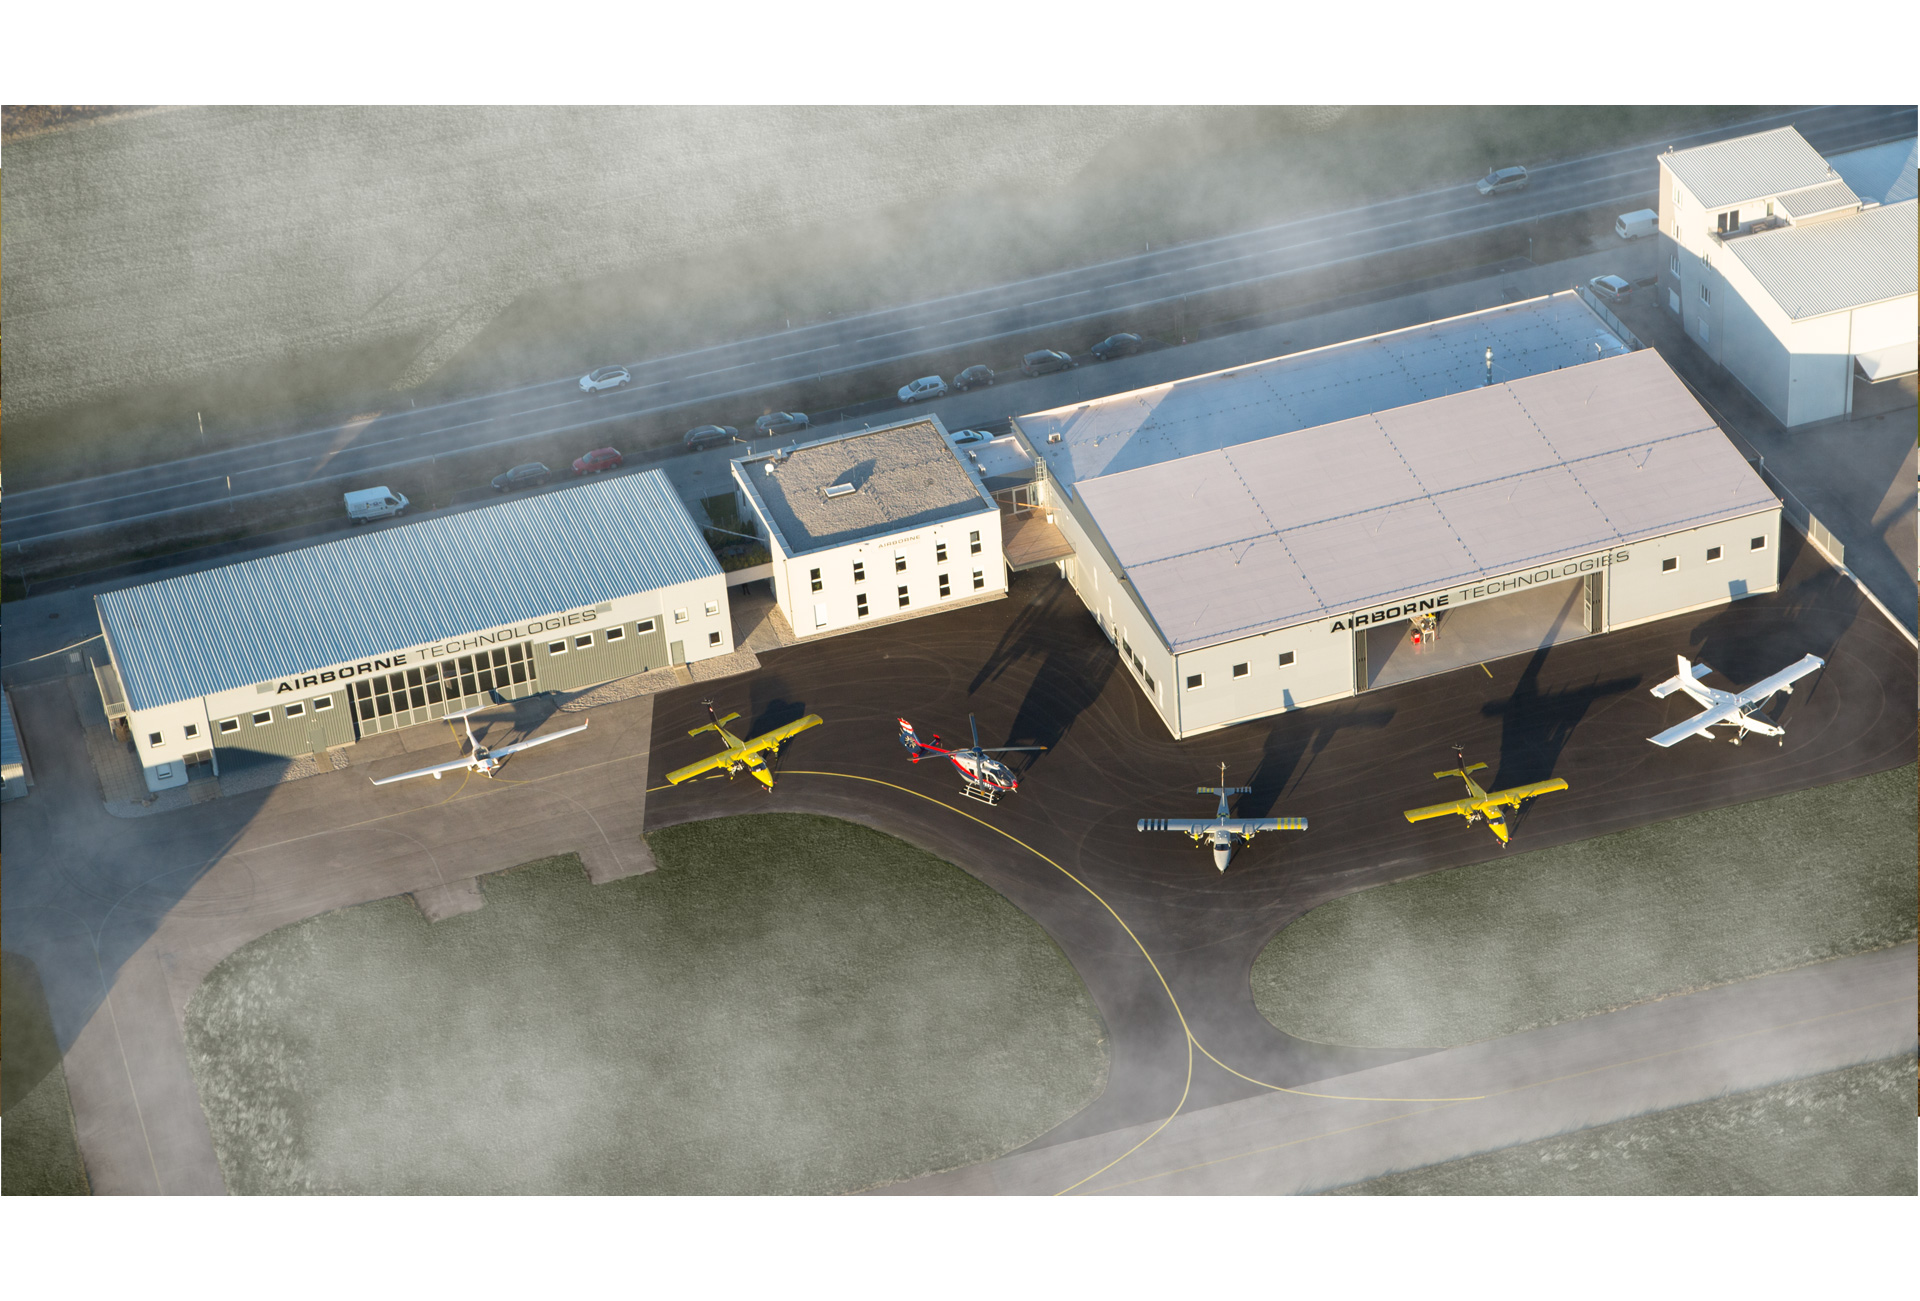 Airborne Technologies Facilities